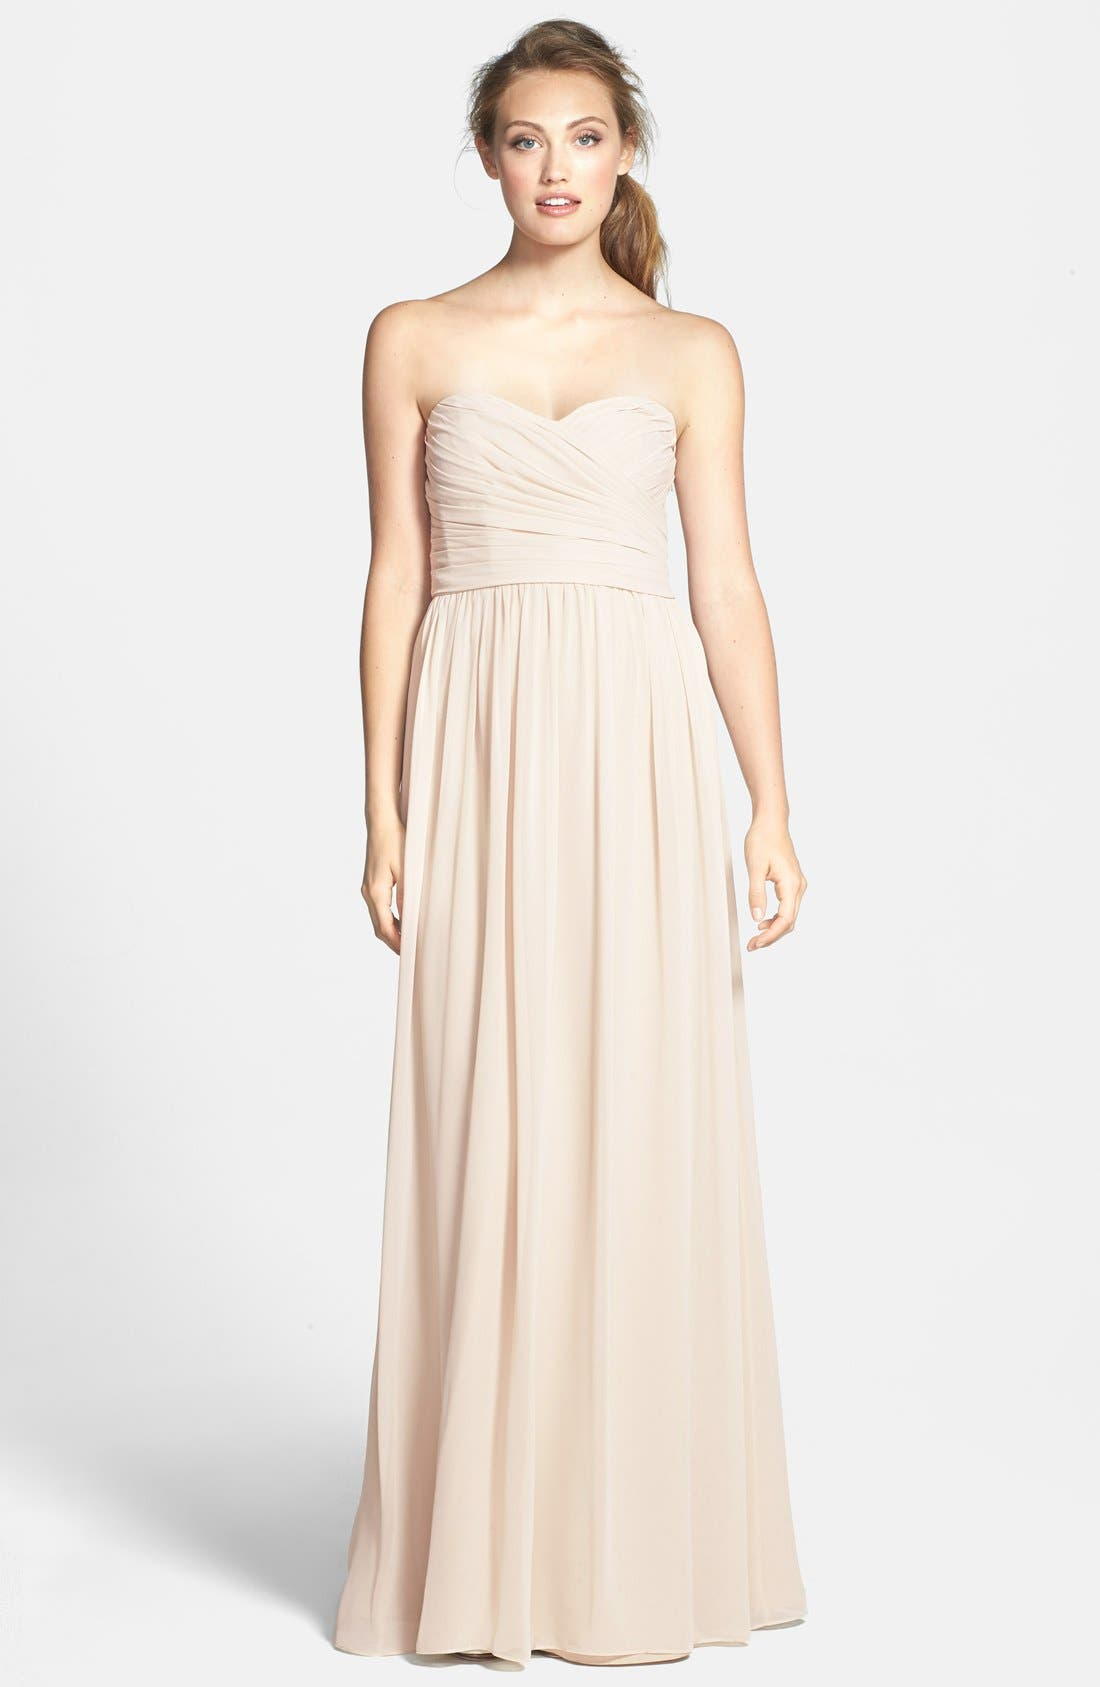 Main Image - Monique Lhuillier Bridesmaids Strapless Ruched Chiffon Sweetheart Gown